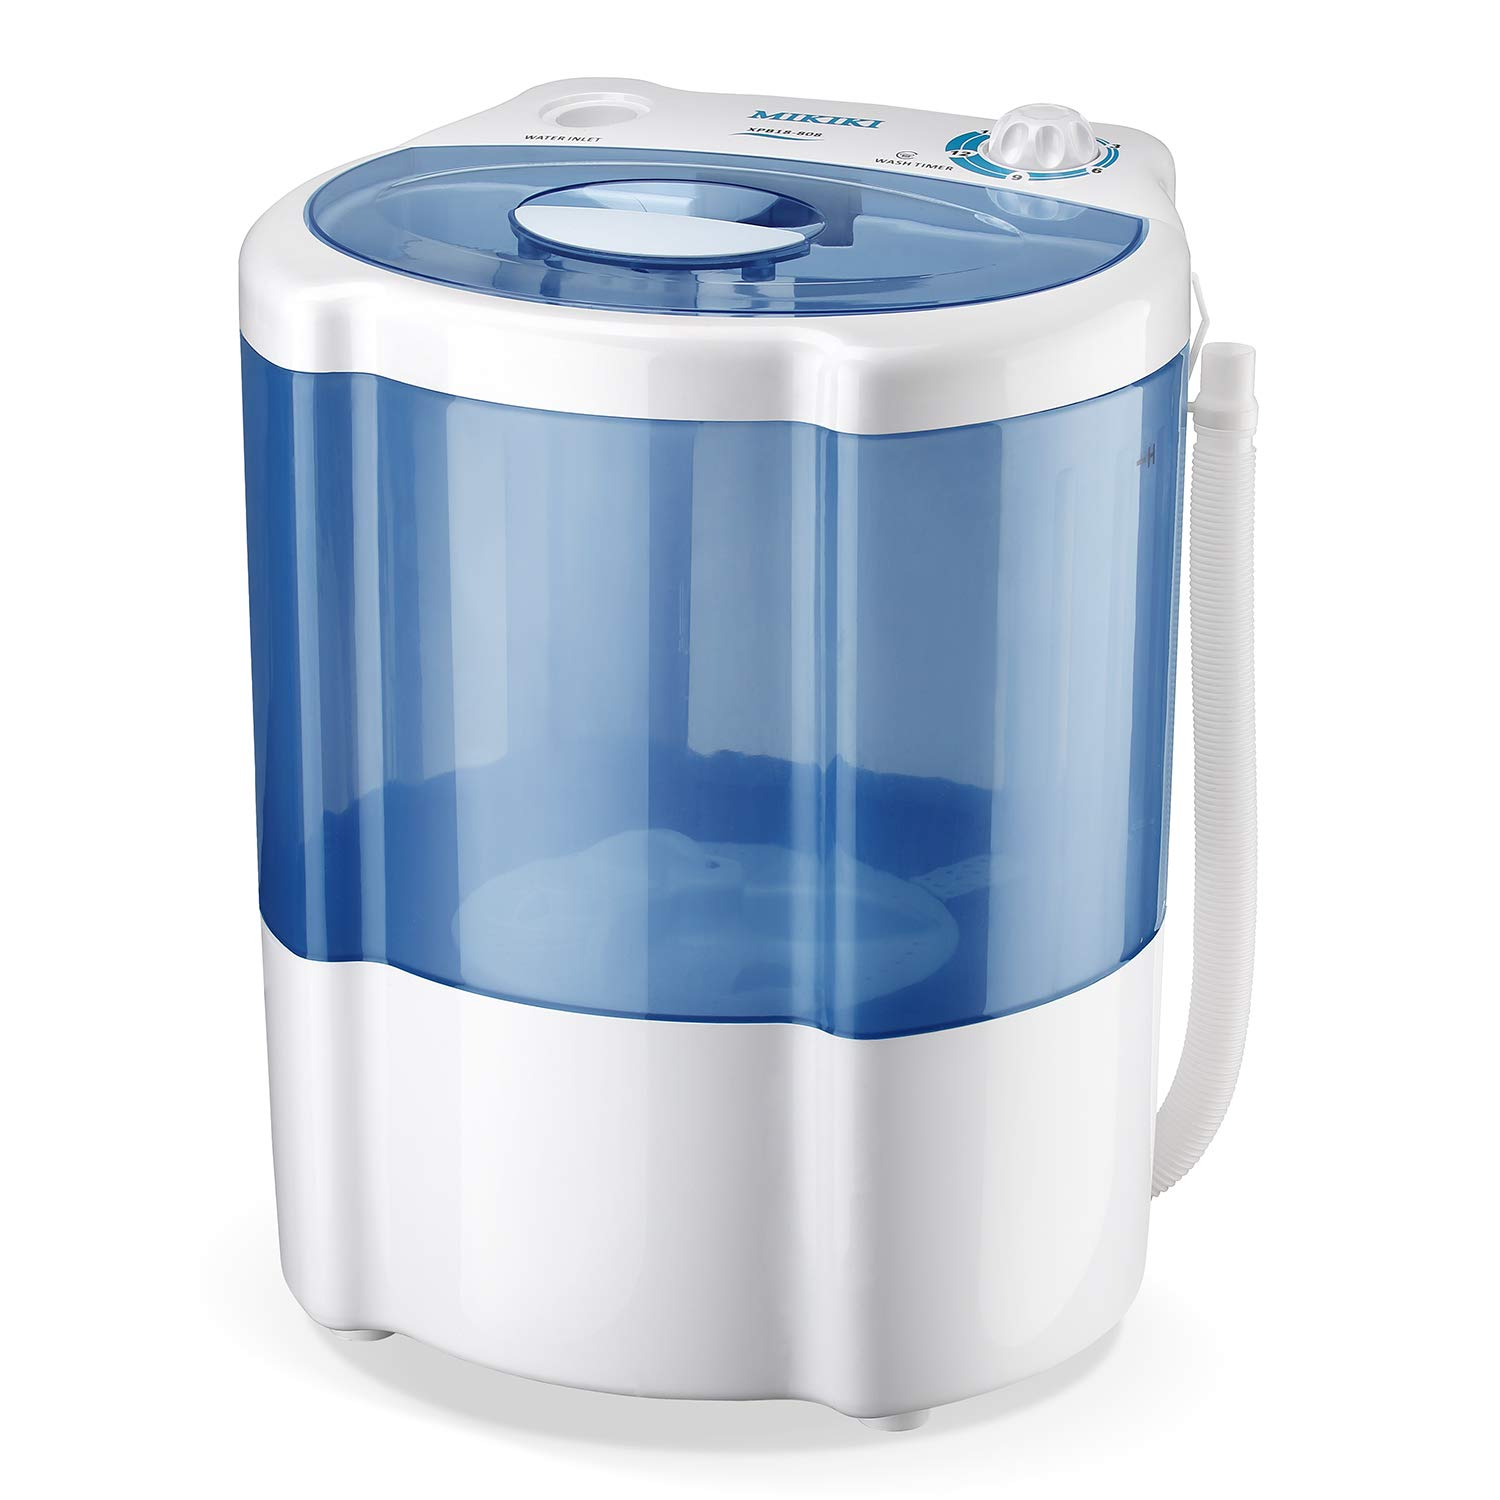 MIKIKI Portable Full-Automatic Washing Machine, 1.8 Cu.ft Laundry Washer Spin Washer, Fast Wash, Rinse, Spin and Drain